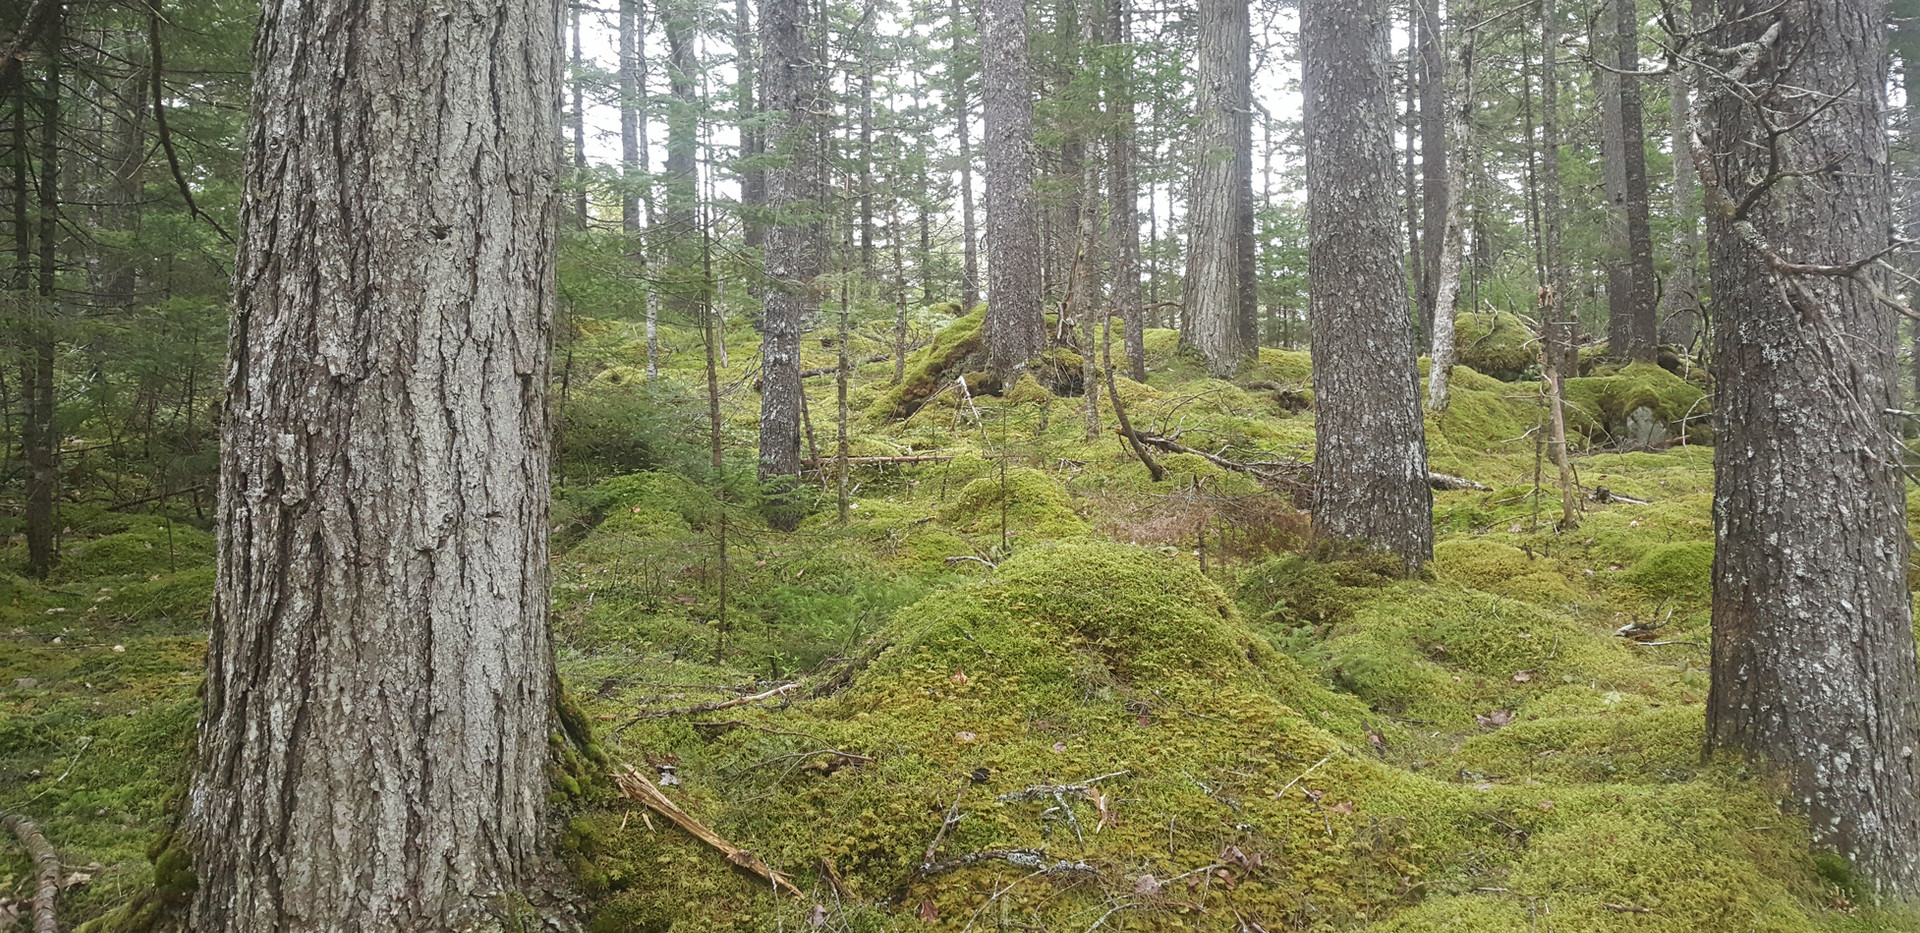 A 400 year old hemlock forest